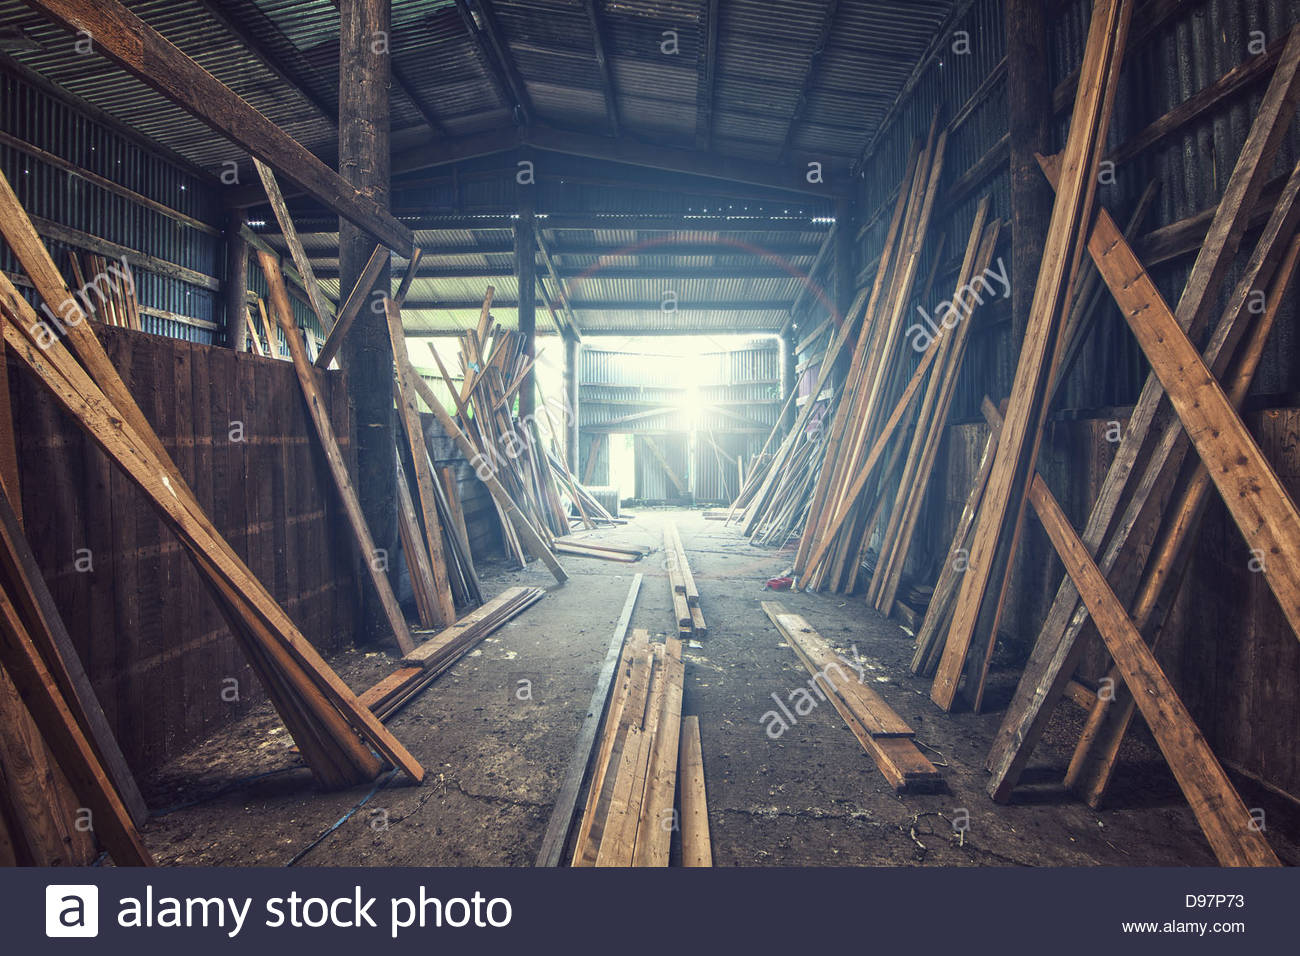 timber yard - Stock Image